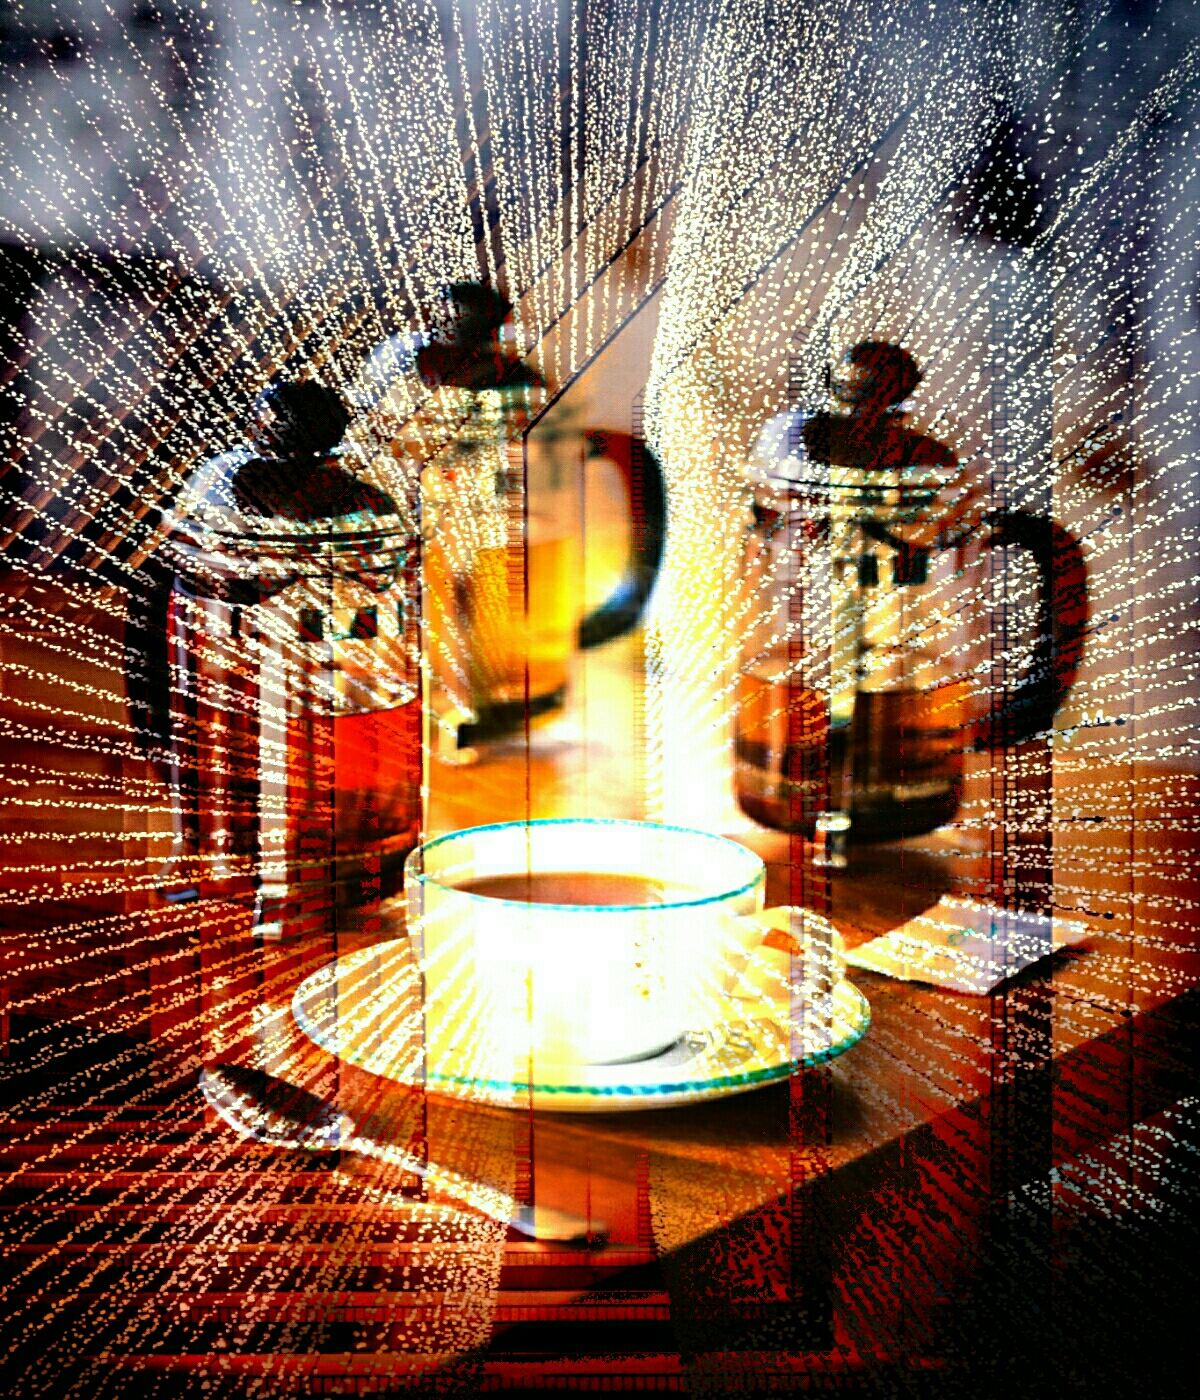 3 Plunger tea pots with a teacup and saucer with multiple light streams surrounding them.